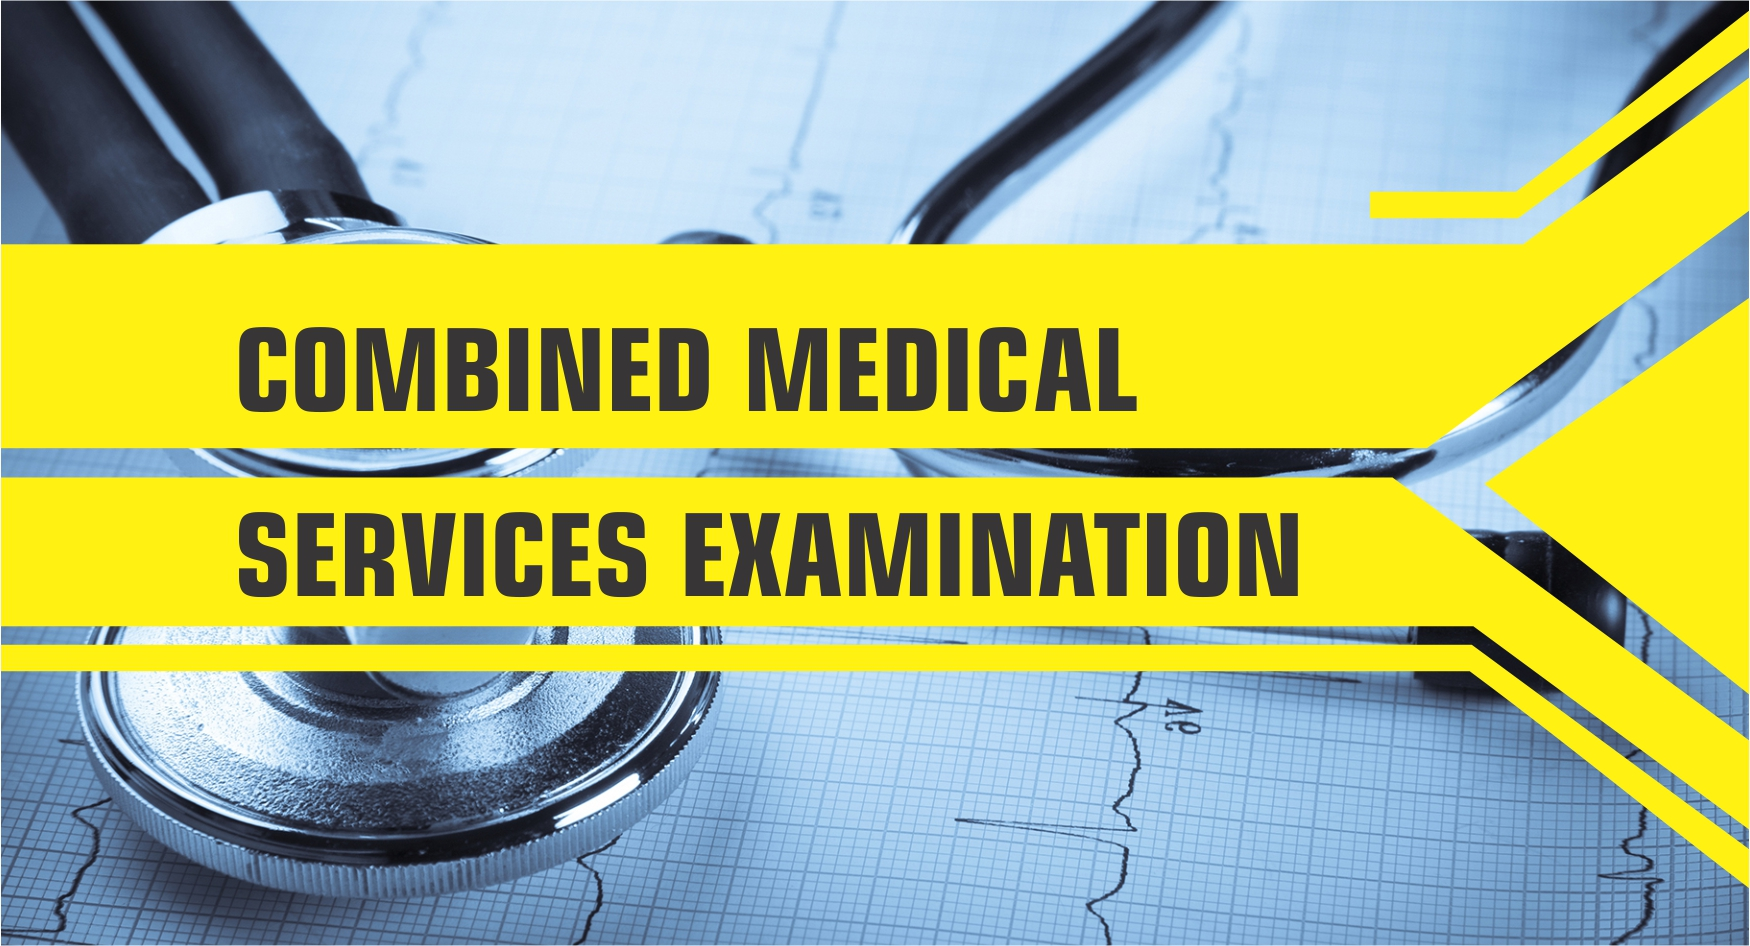 Exams Under UPSC - Combined Medical Services Examination